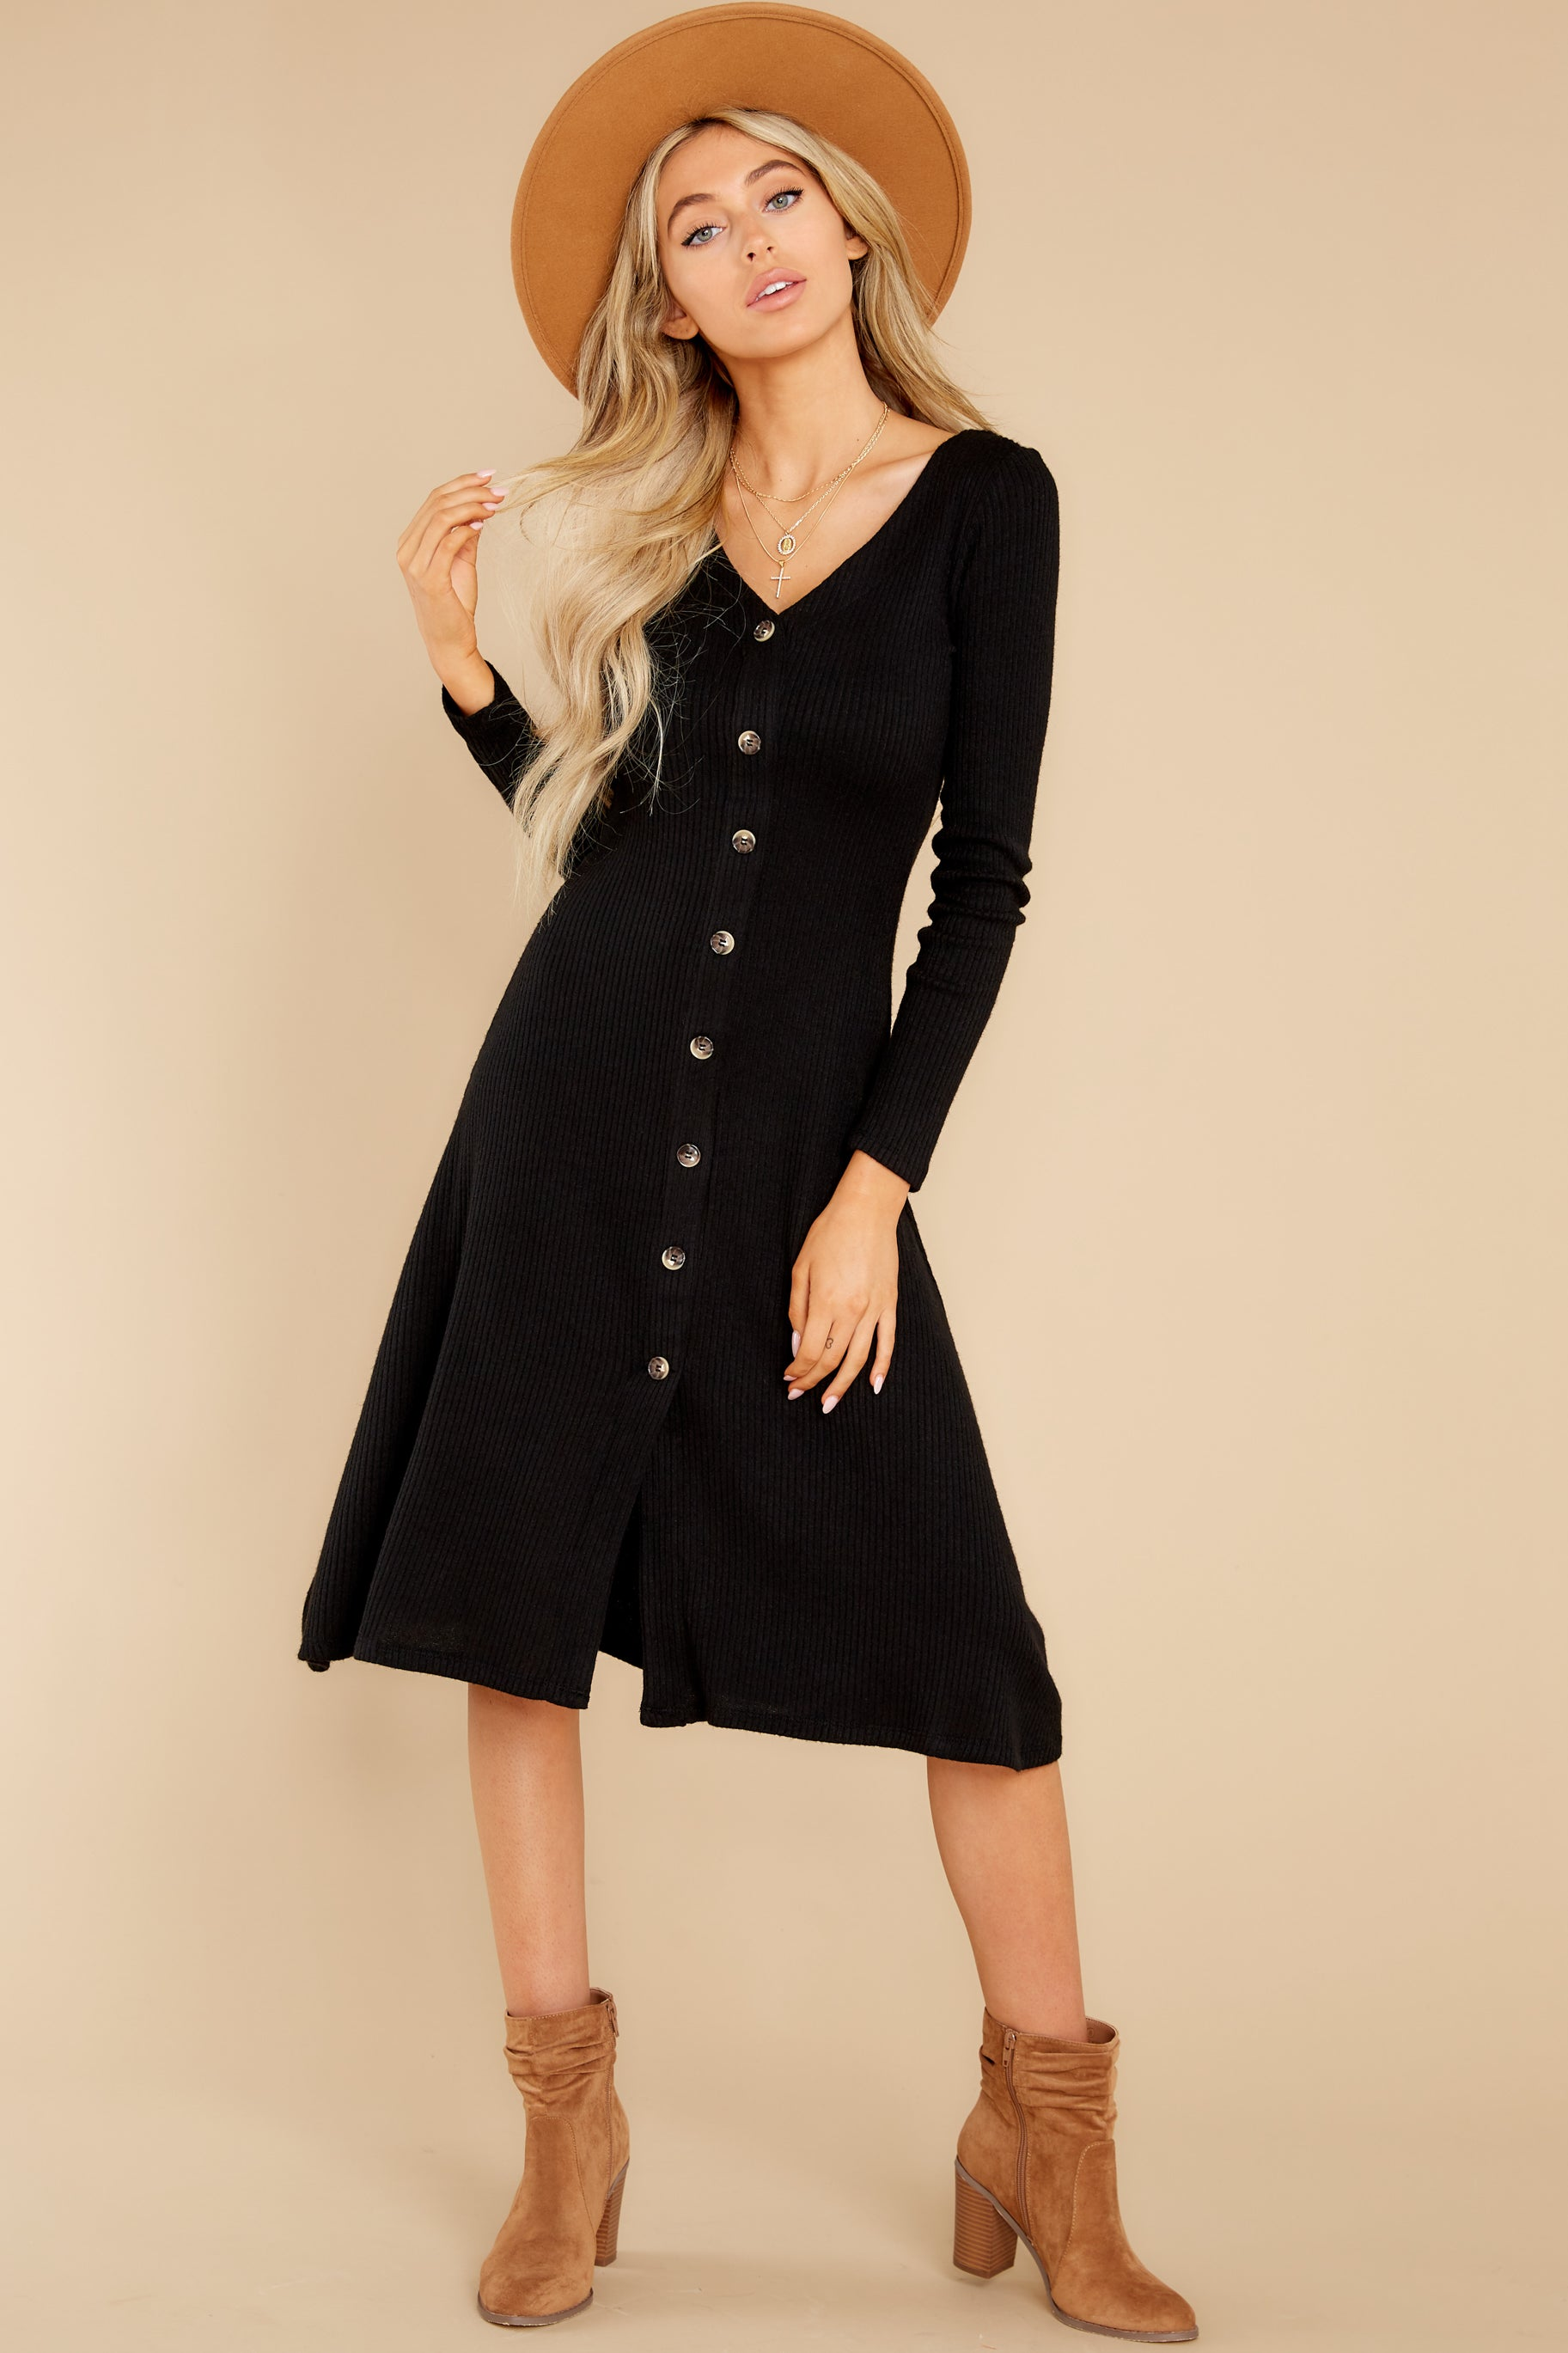 4 Keep It Uptown Black Knit Midi Dress at reddress.com